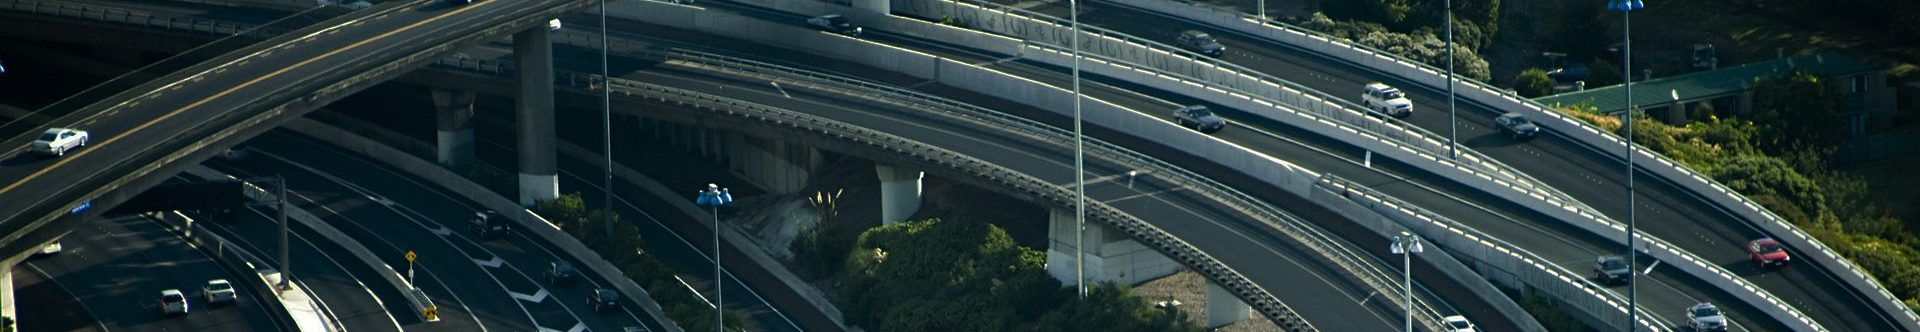 Multiple level highways and overpasses from an aerial view